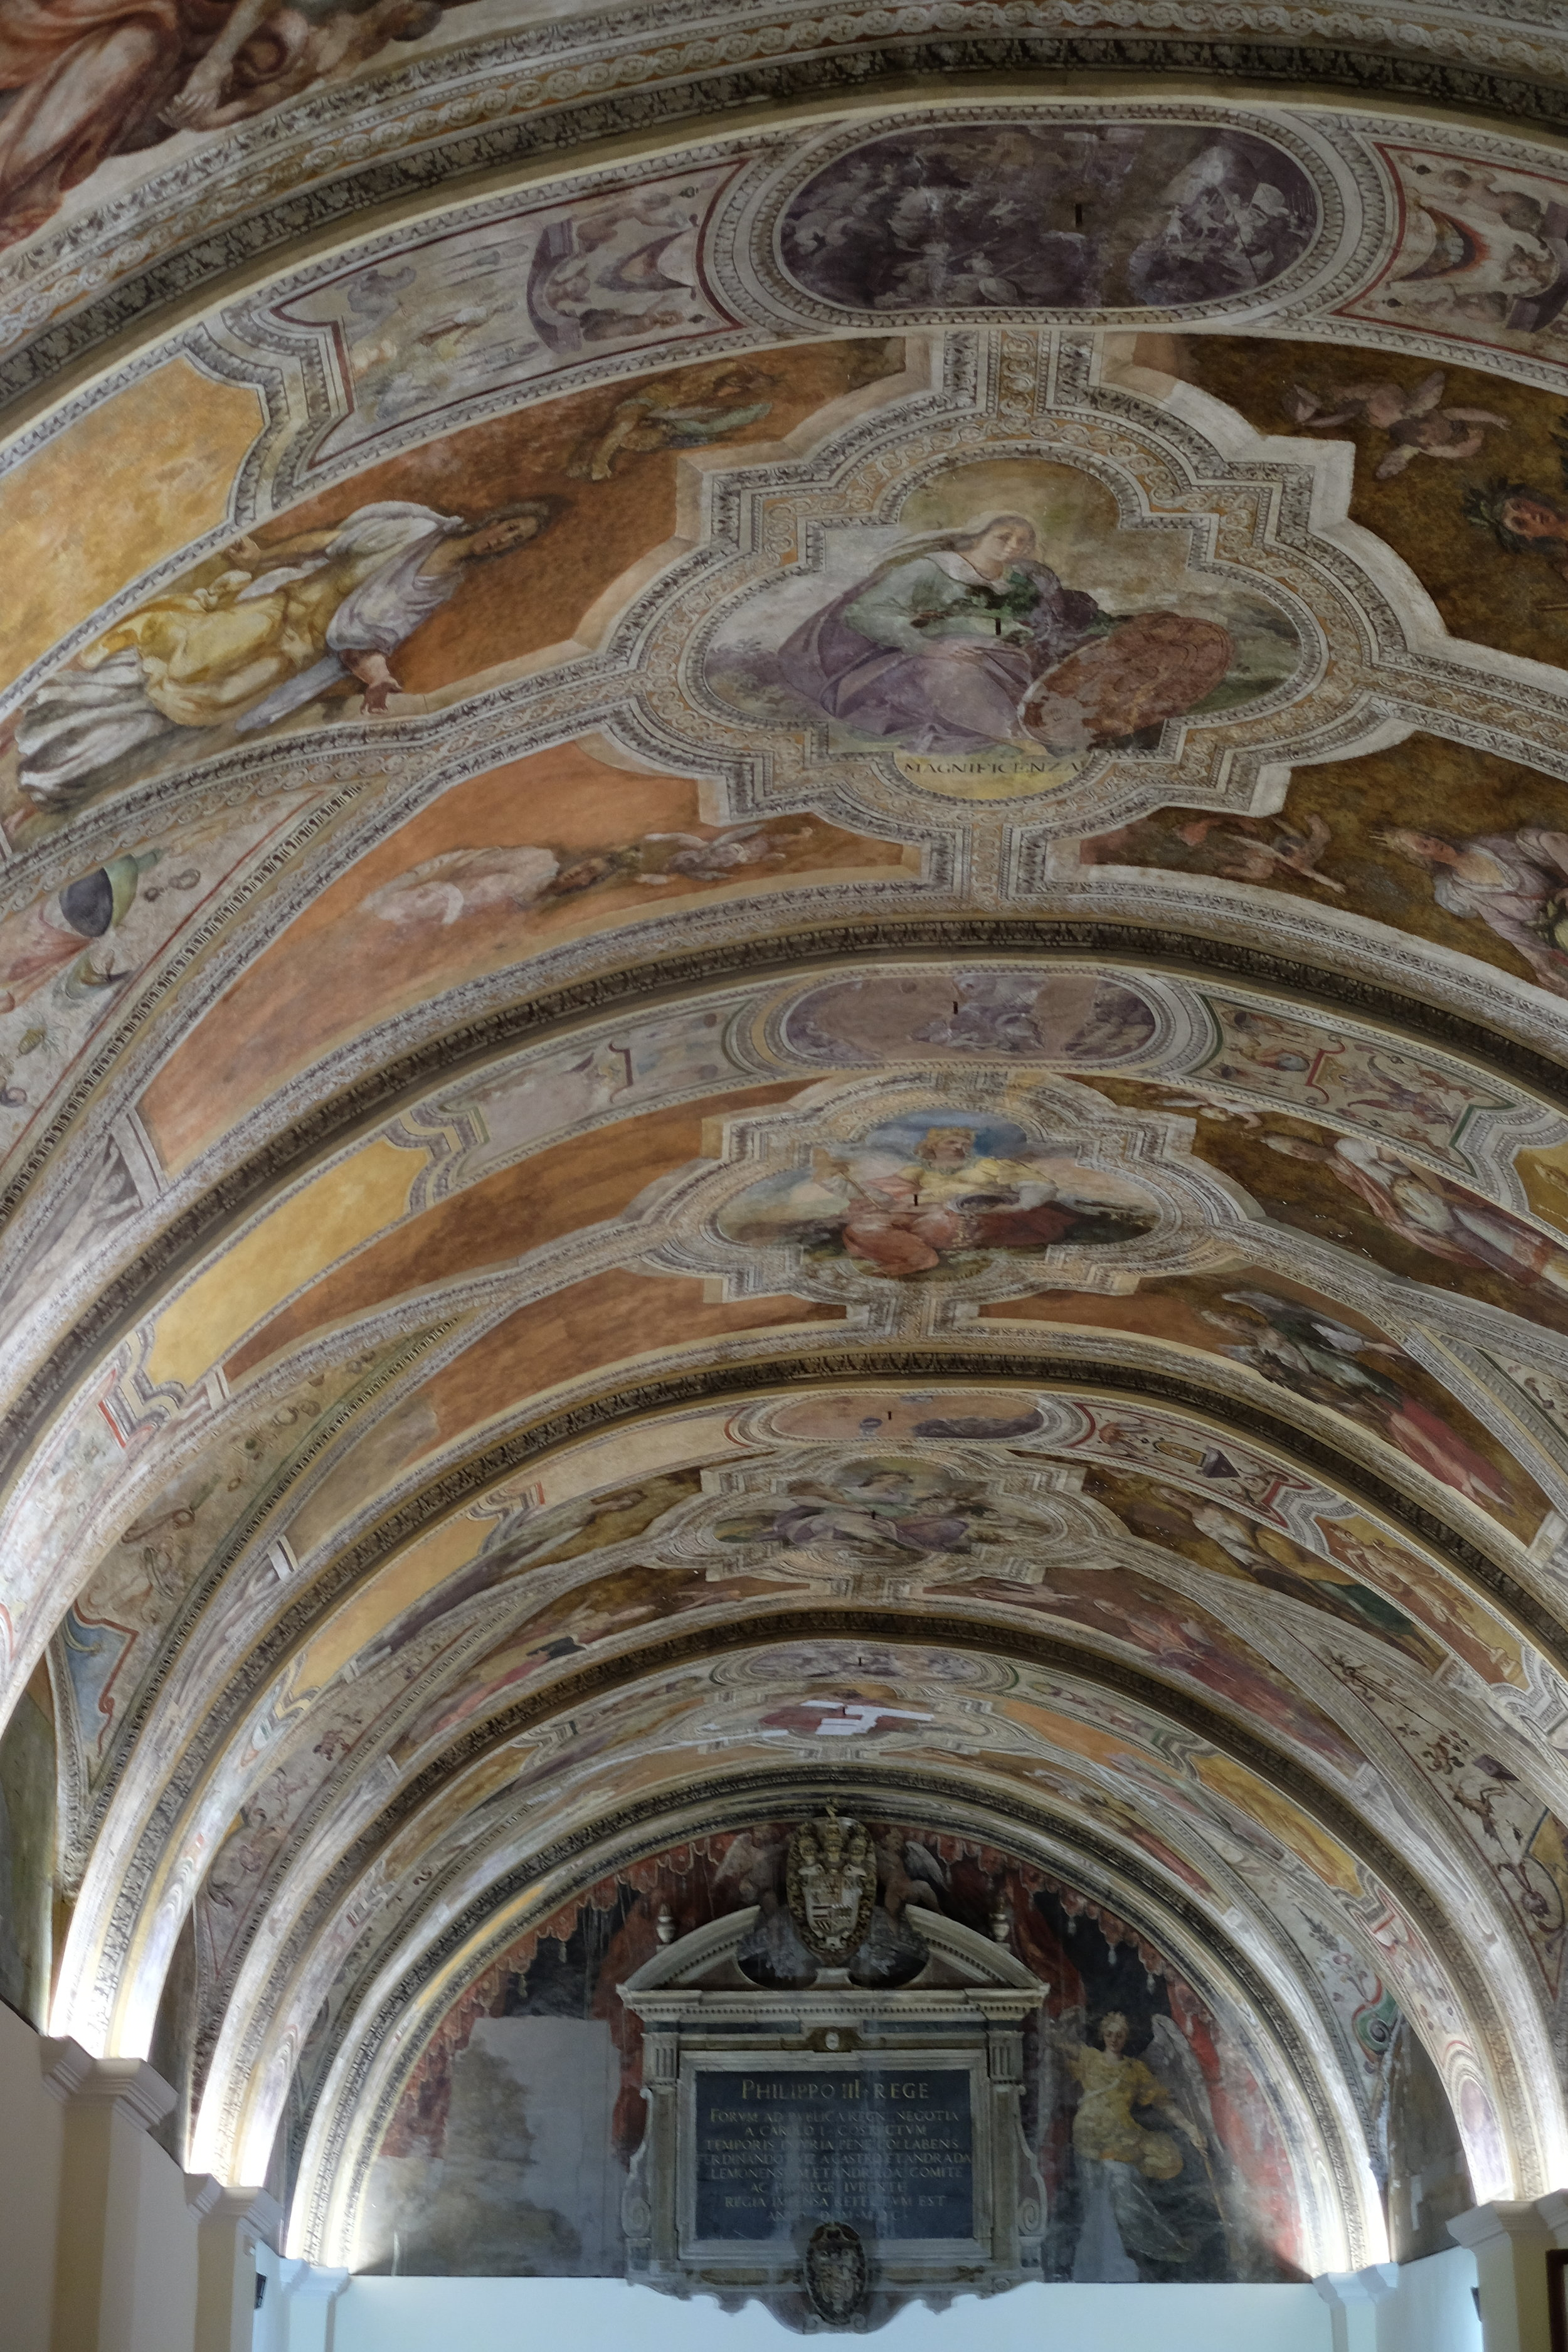 The frescoes in the Pope Sisto V Hall.